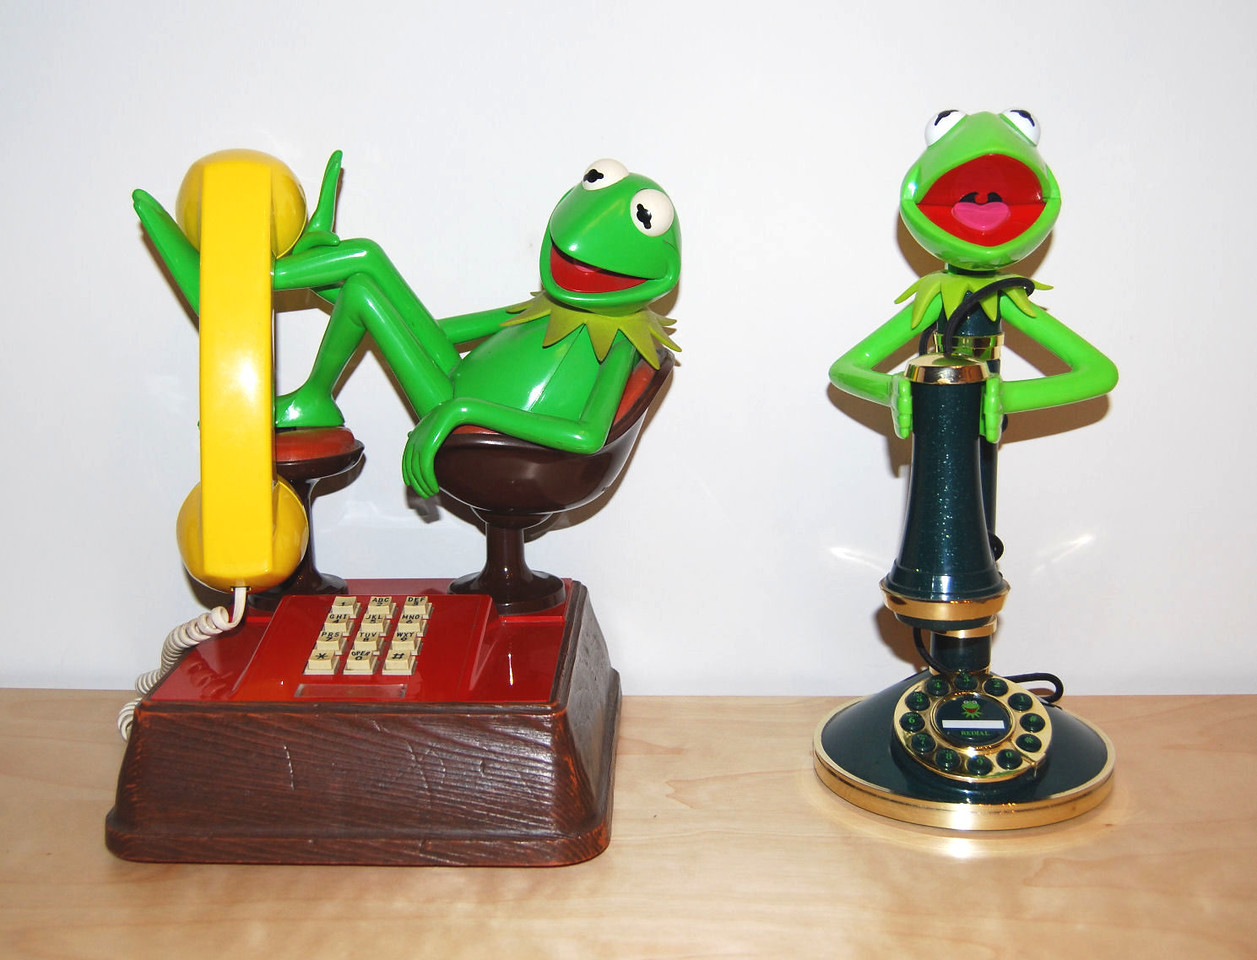 Kermit telephone (touch tone) American Telecommunications Corporation 1983  Kermit candlestick telephone TeleDynamics 1996